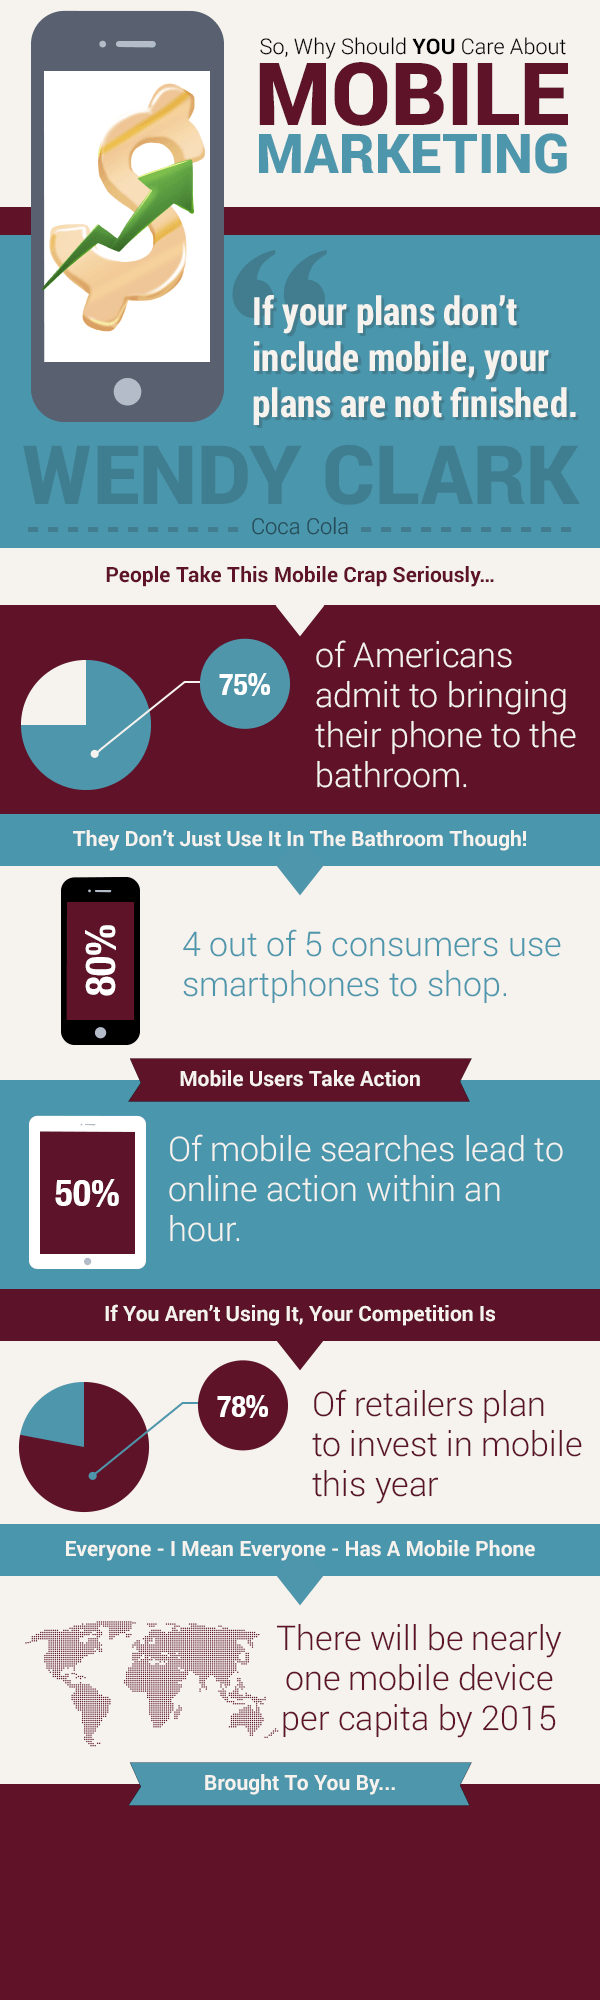 MobileInfographic - Smartphones and Internet Marketing